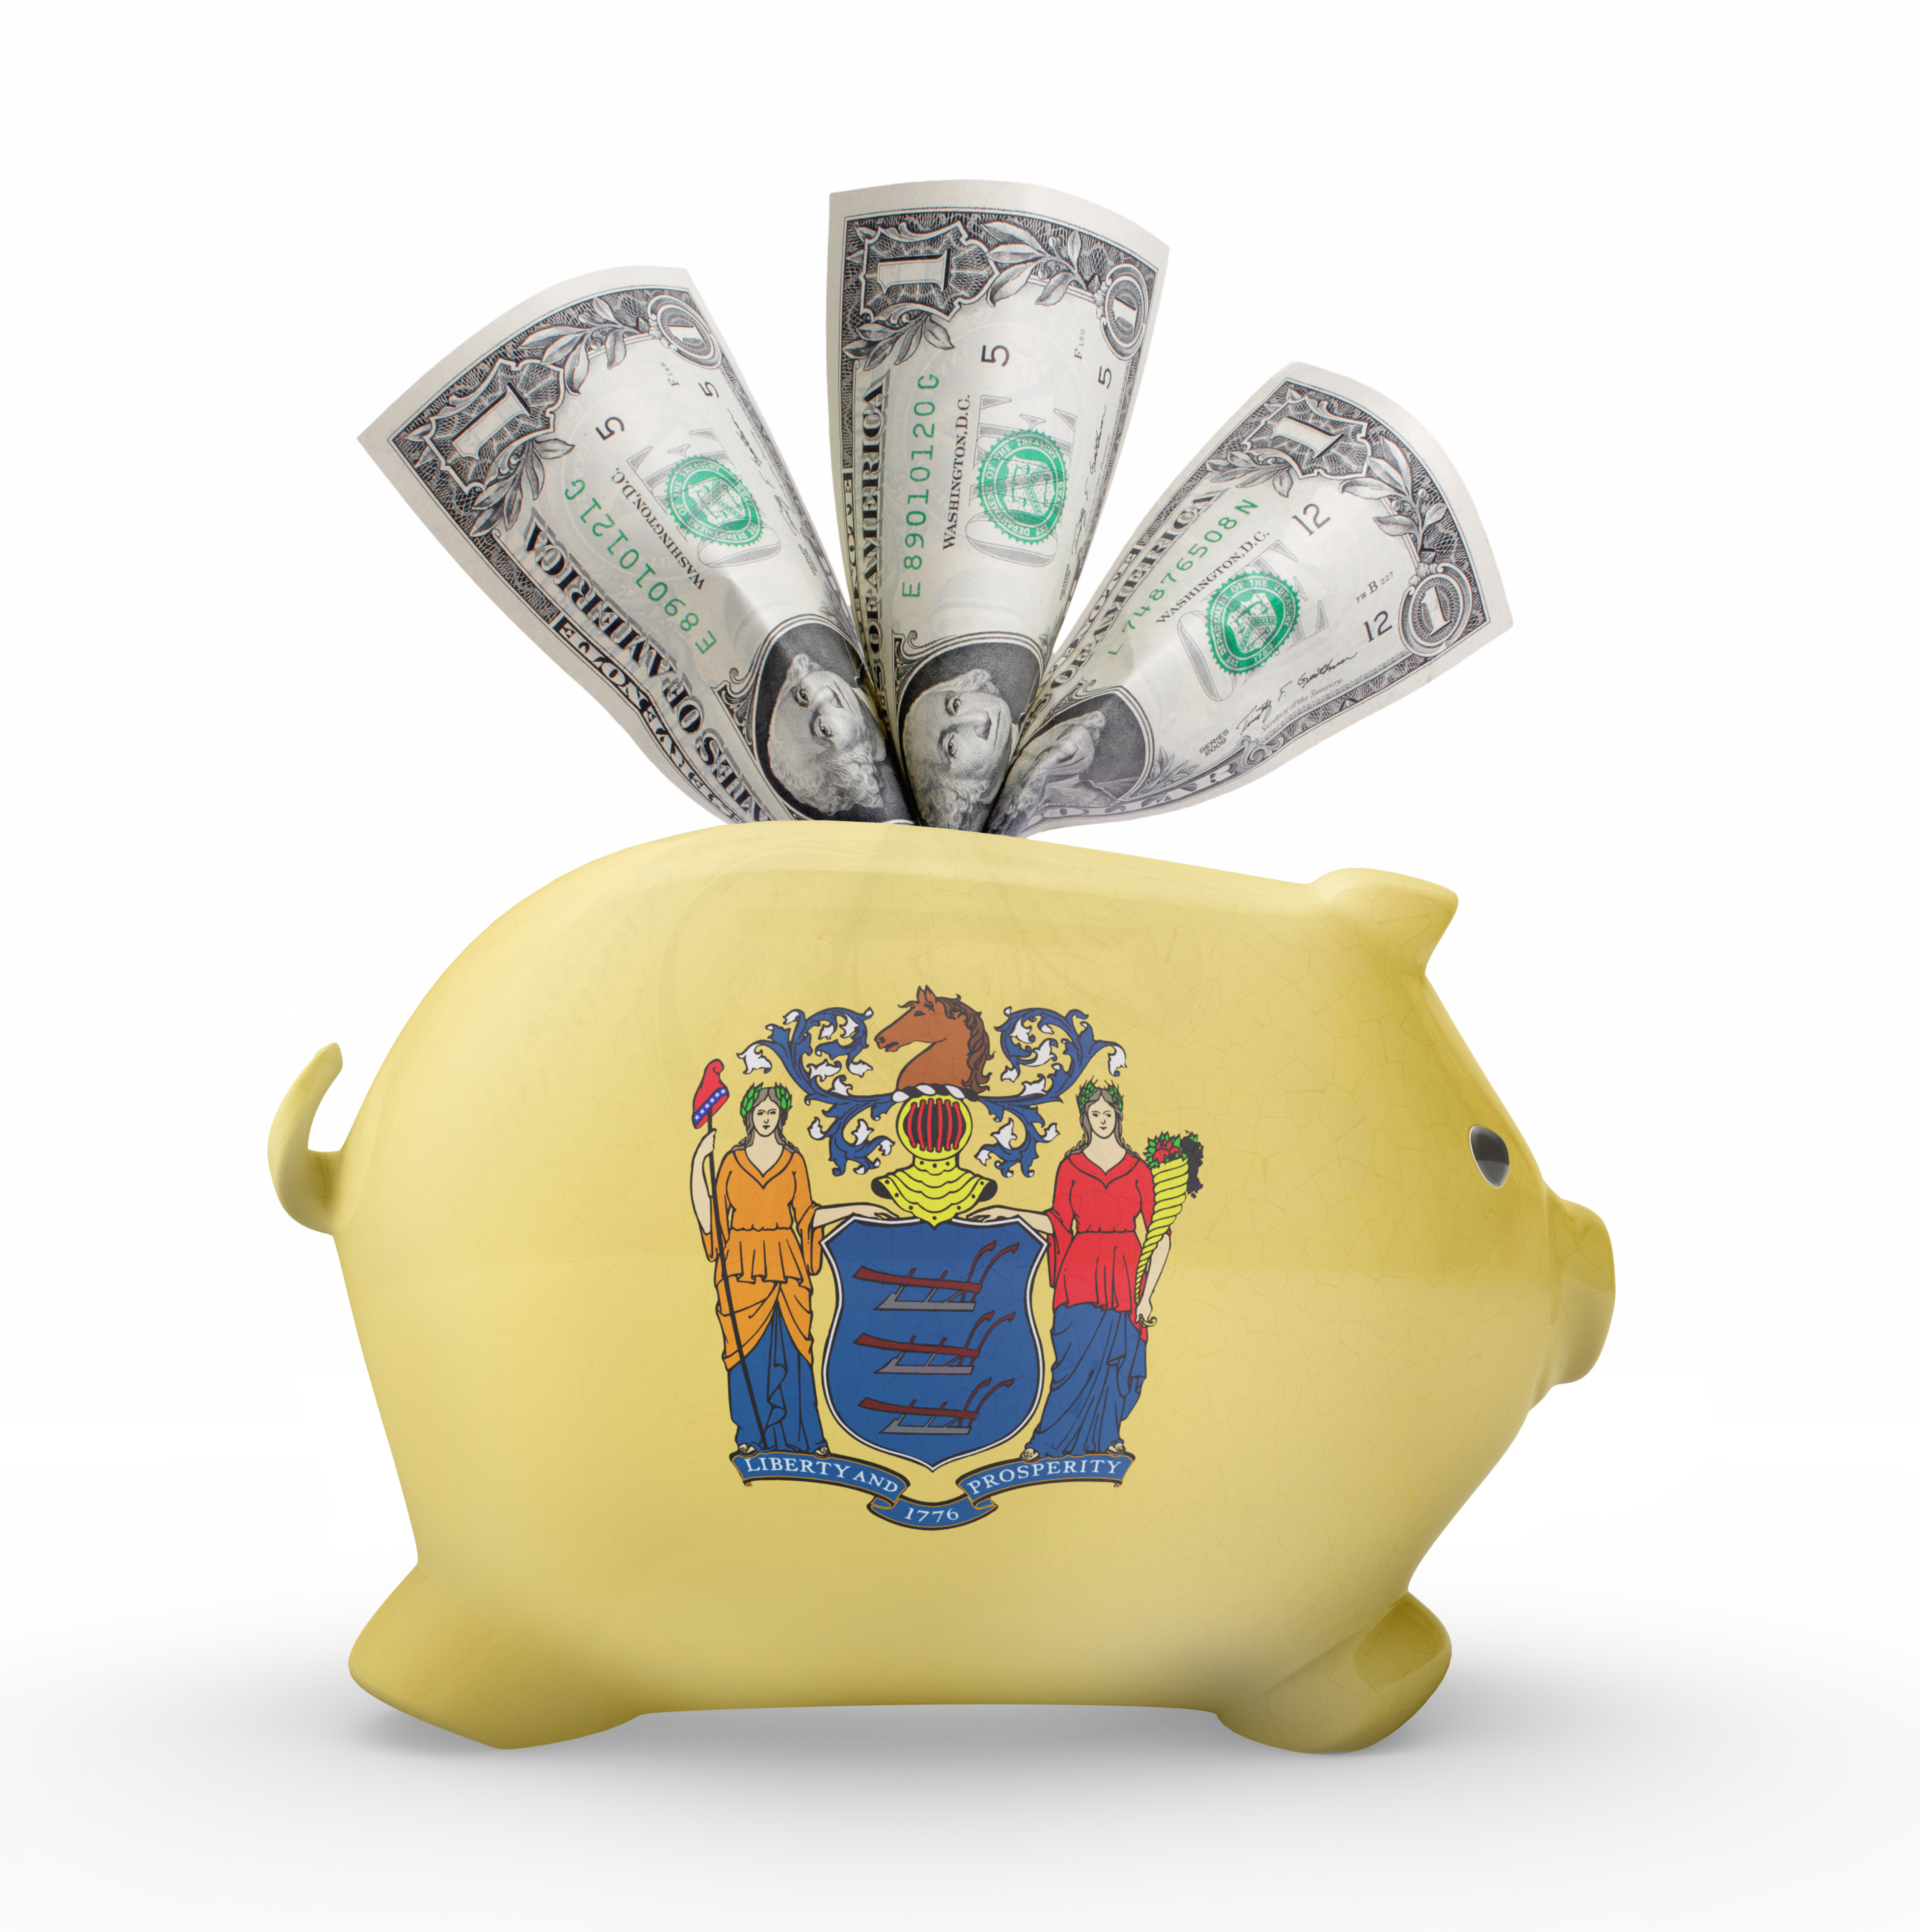 New Jersey's 2020 Governor's Proposed Budget Targets Millionaires